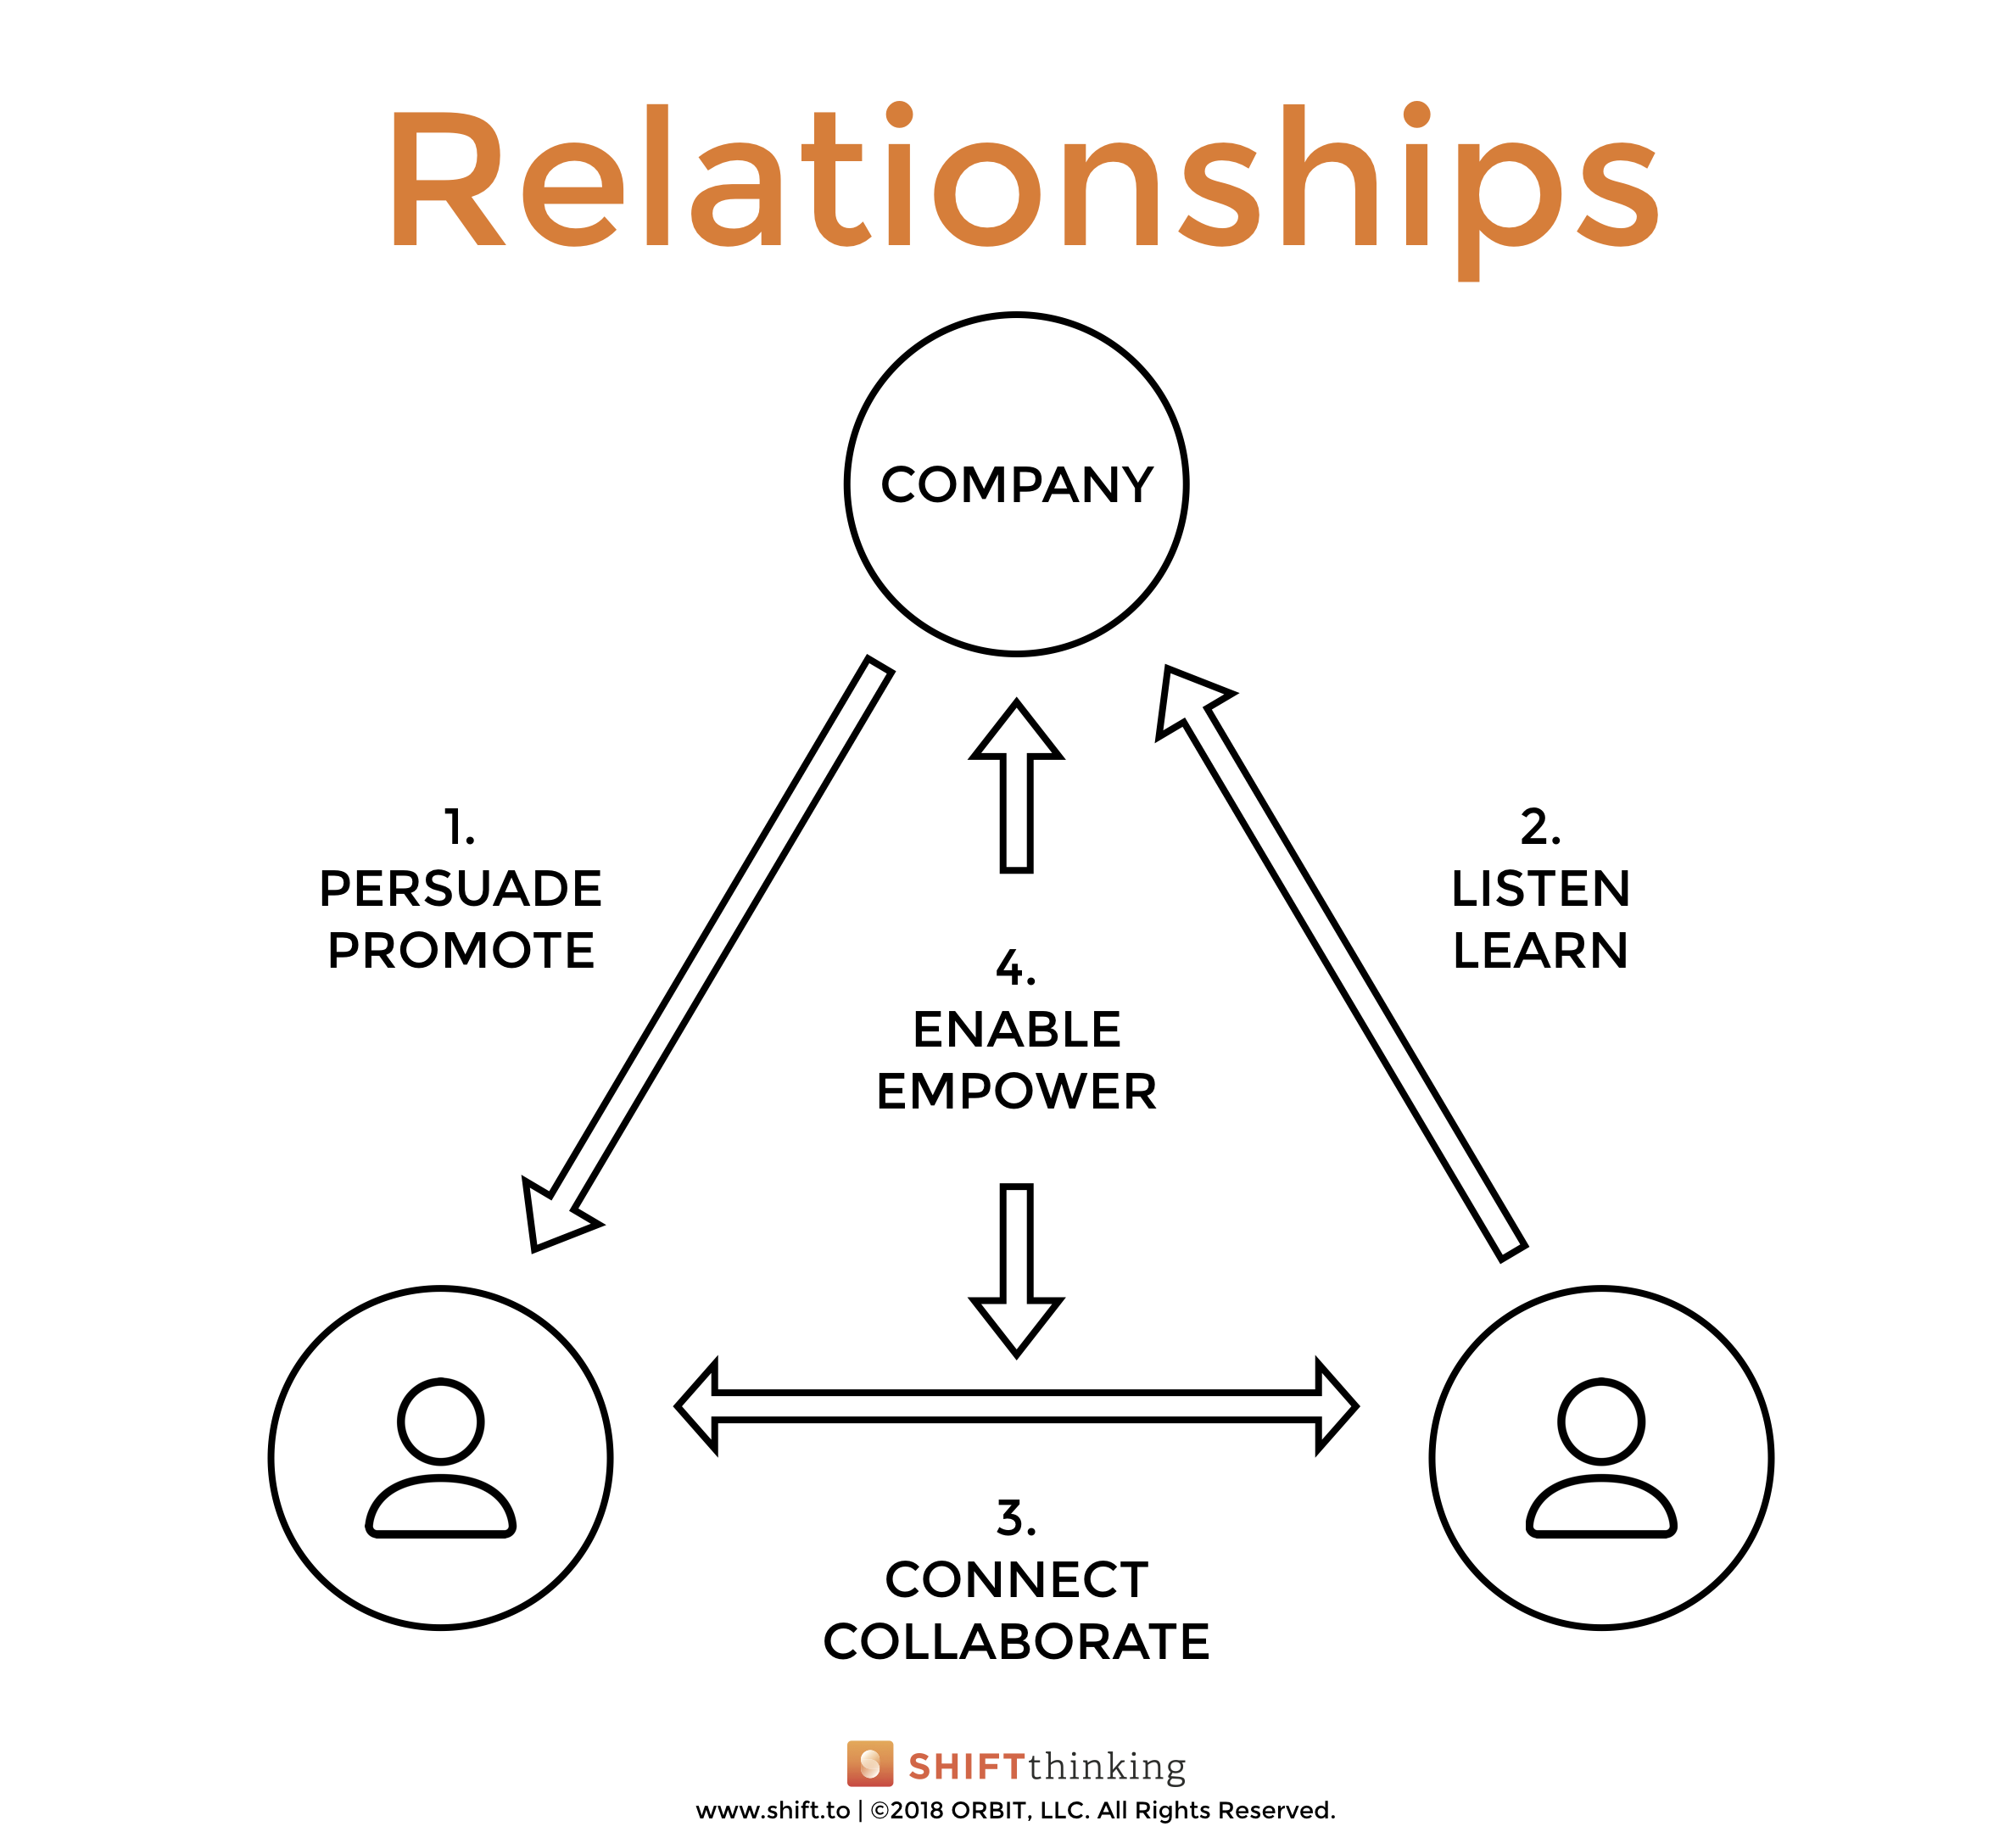 Brands are relationships.  This graphic shows four types of relationships companies can have with customers: 1. Persuade & promote; 2. Listen & learn; 3. Connect & collaborate; and 4. Enable & empower.